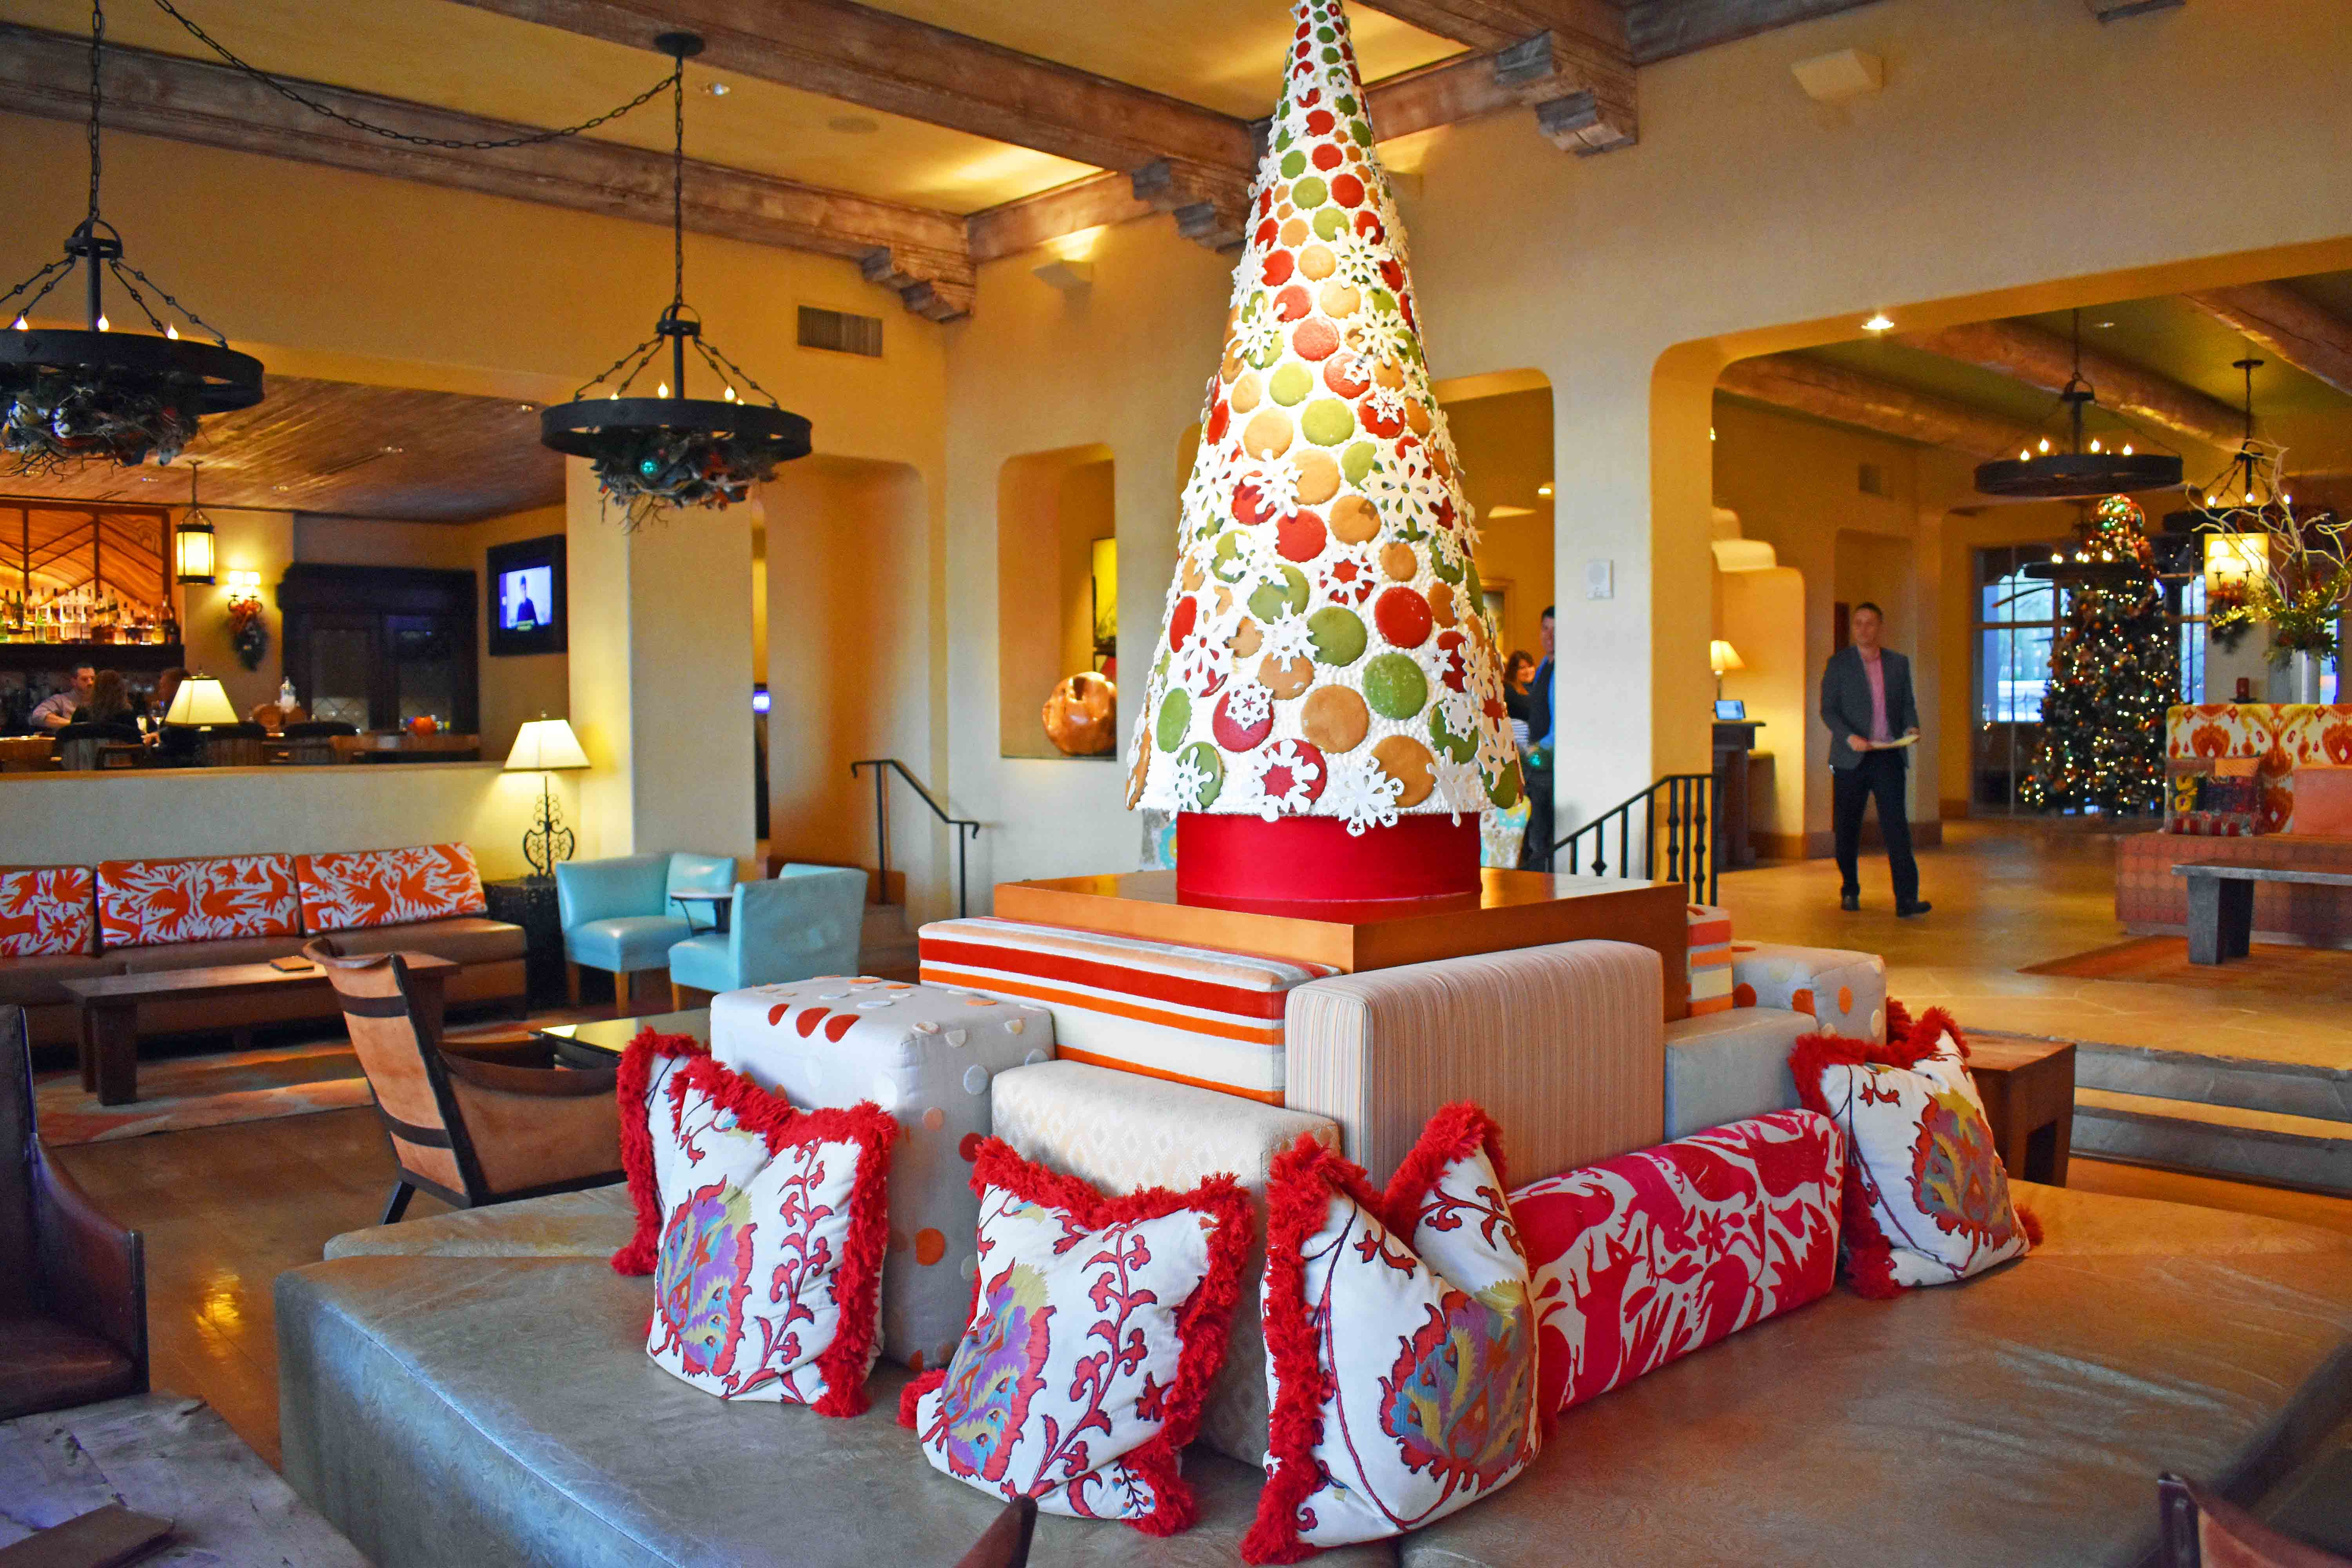 Arizona Four Seasons Christmas and Homemade Hot Chocolate.Christmas at Four Seasons Scottsdale Troon North.